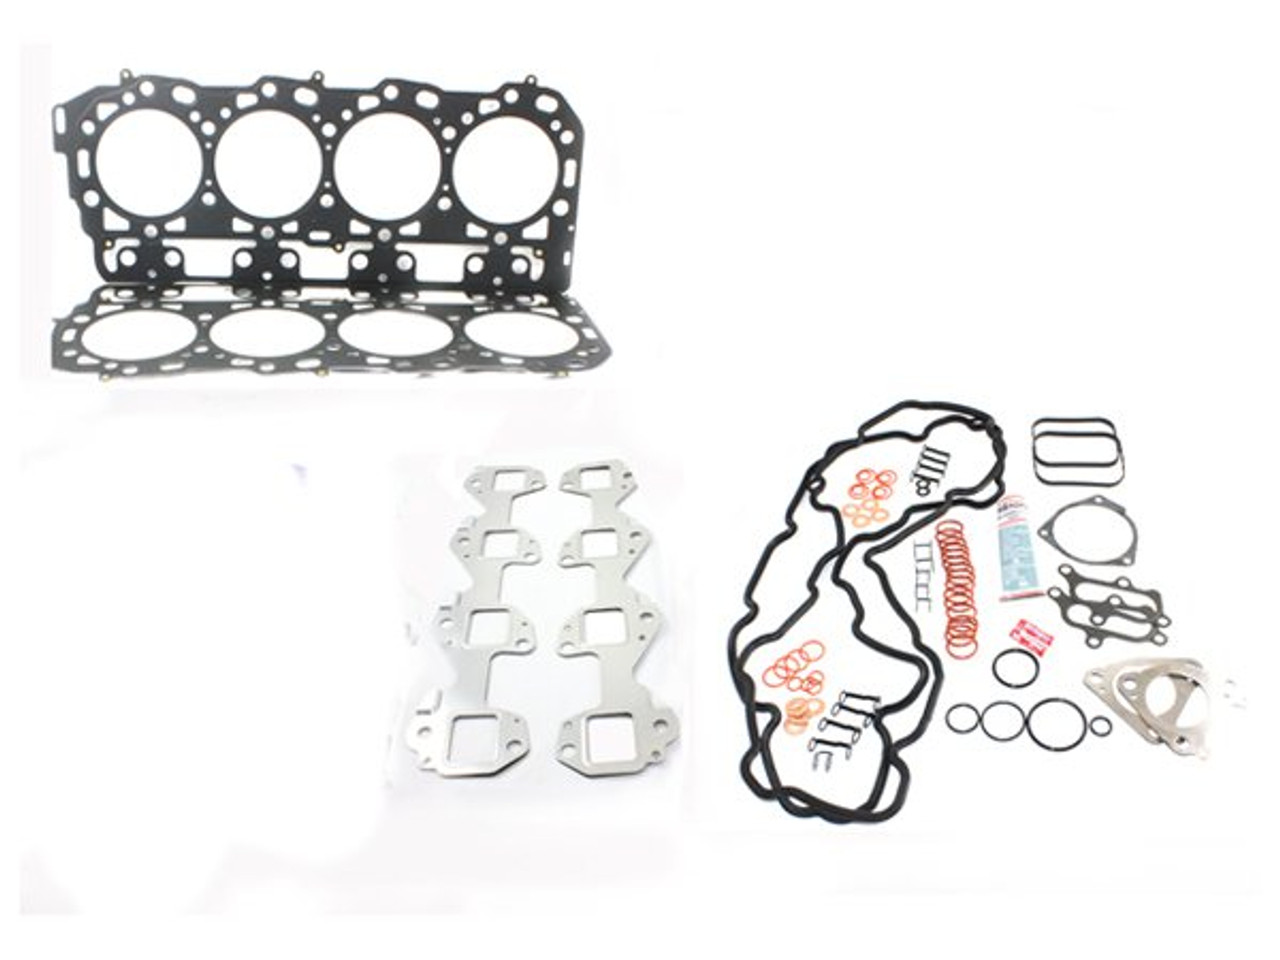 LB7 Head Gasket Kit With Exhaust Manifold Gaskets, No Bolts